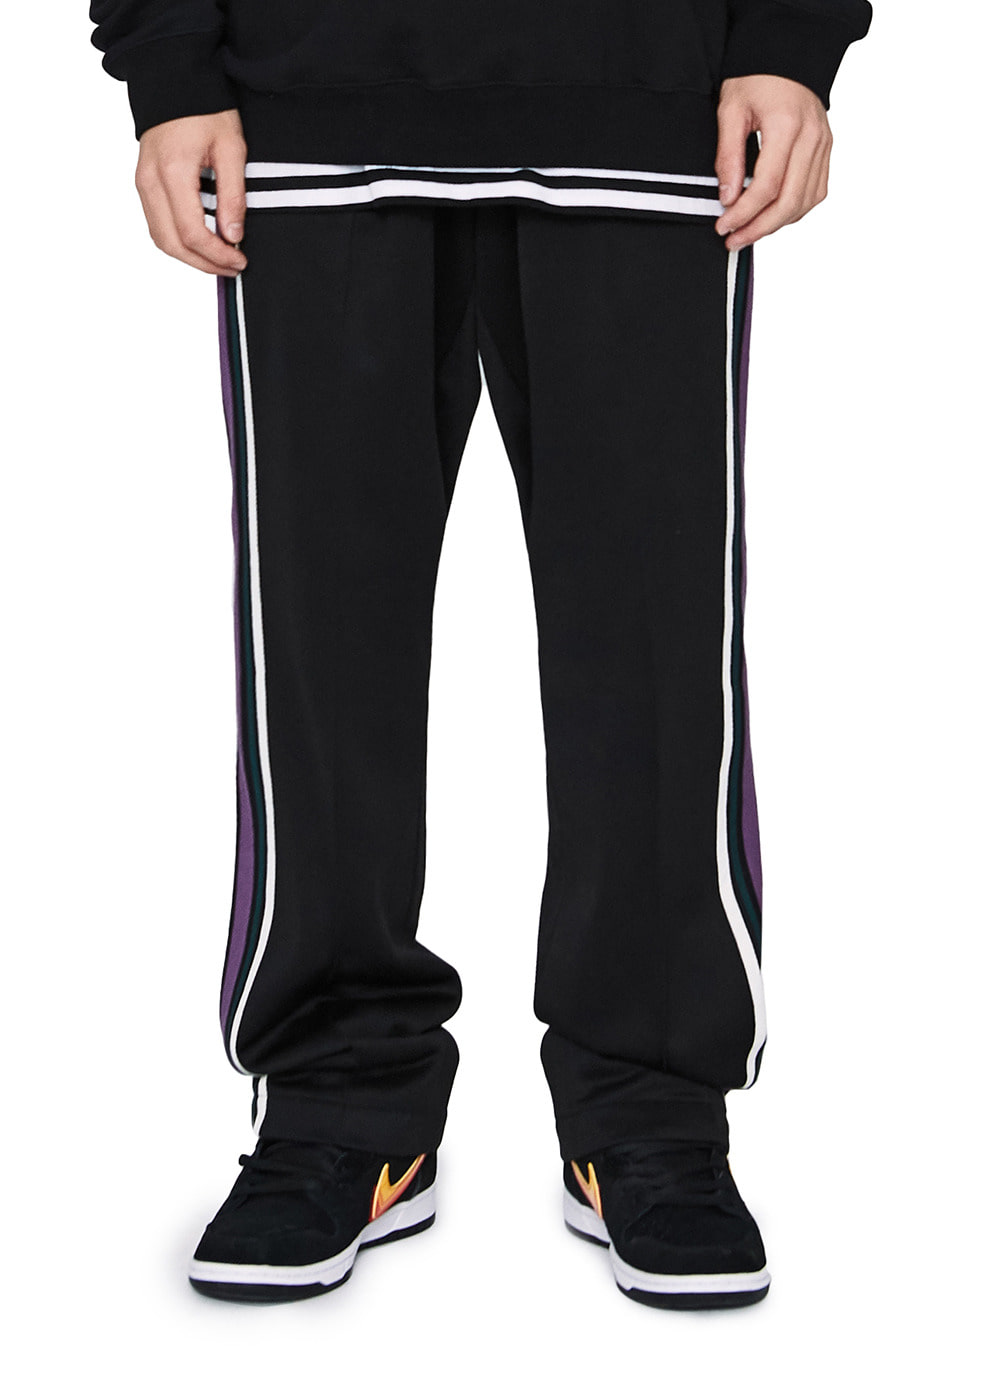 LMC SIDE STRIPED JERSEY PANTS black